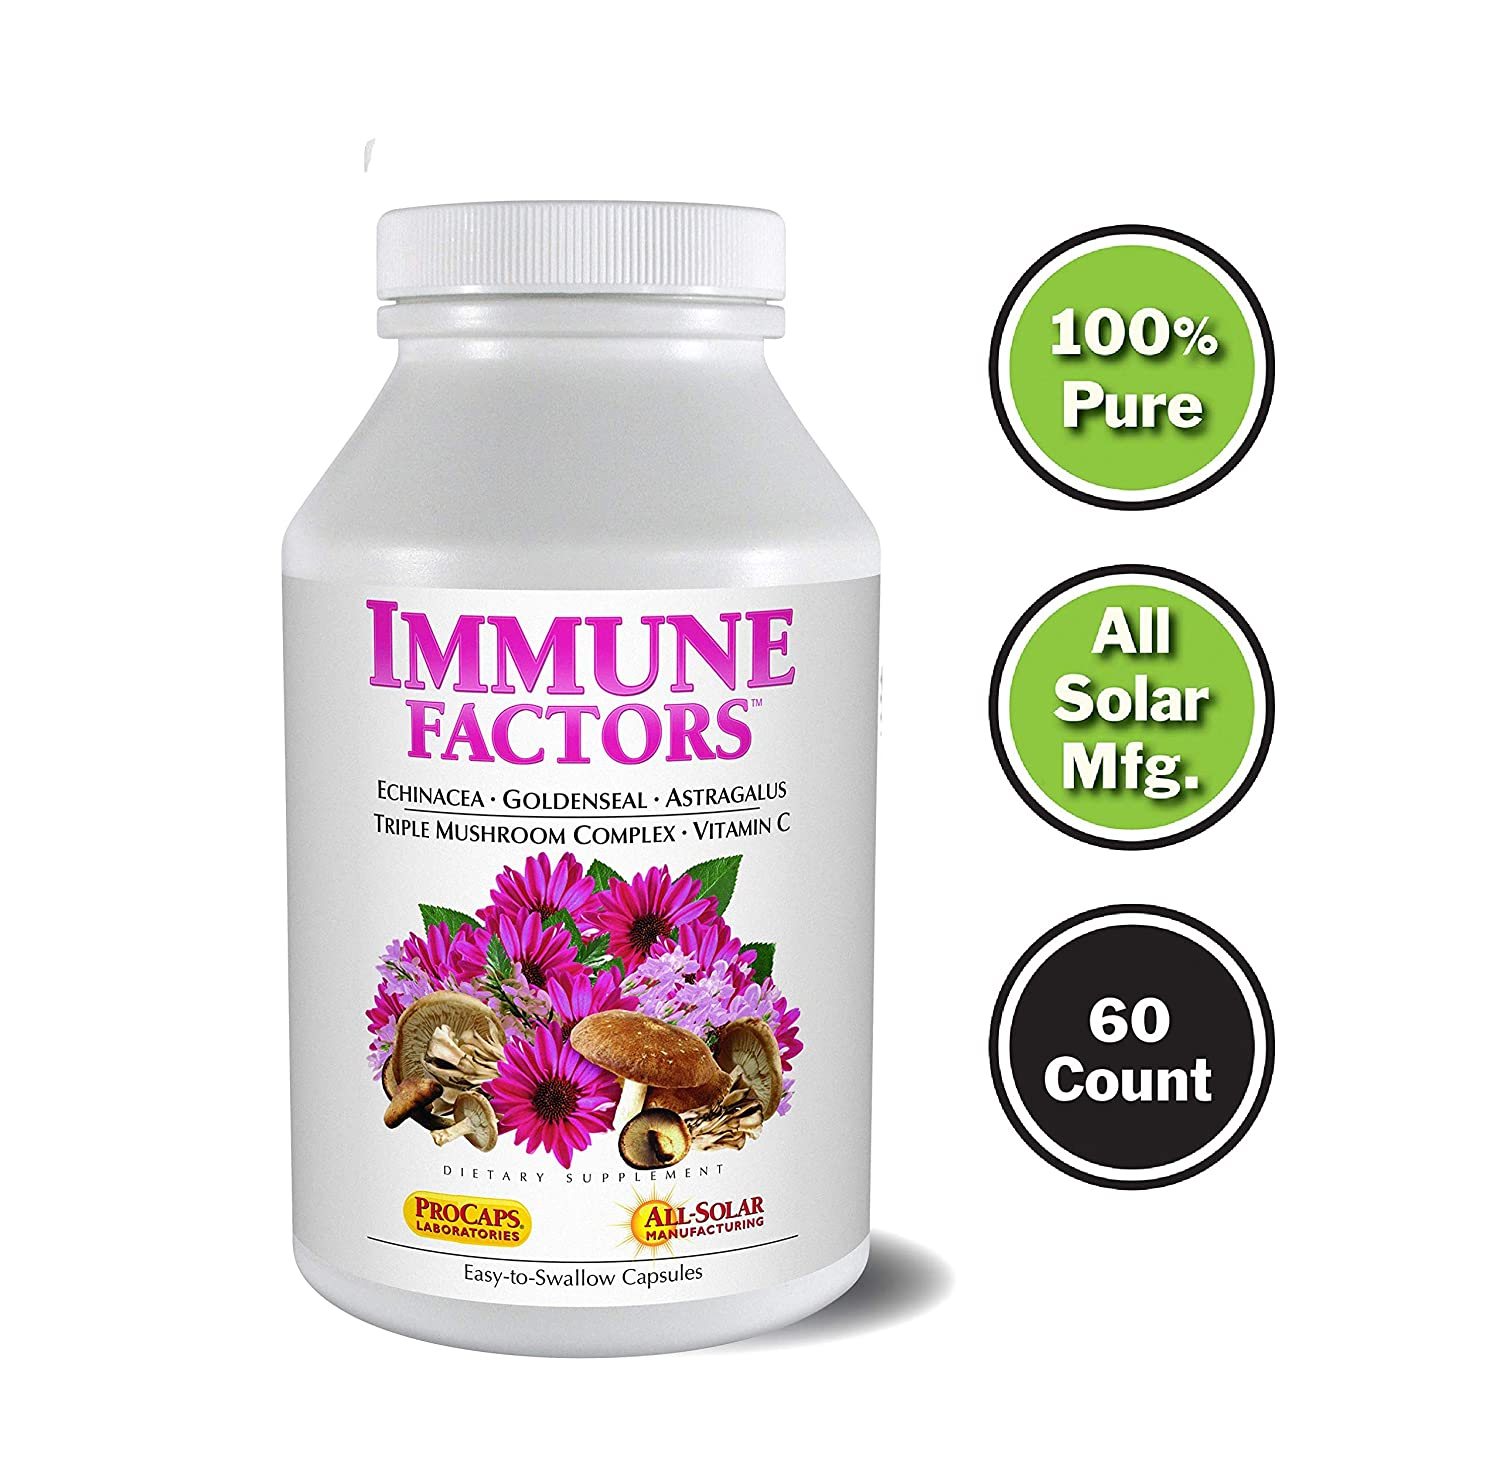 Andrew Lessman Immune Factors 60 Capsules – Echinacea, Goldenseal, Vitamin C, Astragalus, Supports and Promotes Immune System and Natural Defenses, No Additives. Small Easy to Swallow Capsules